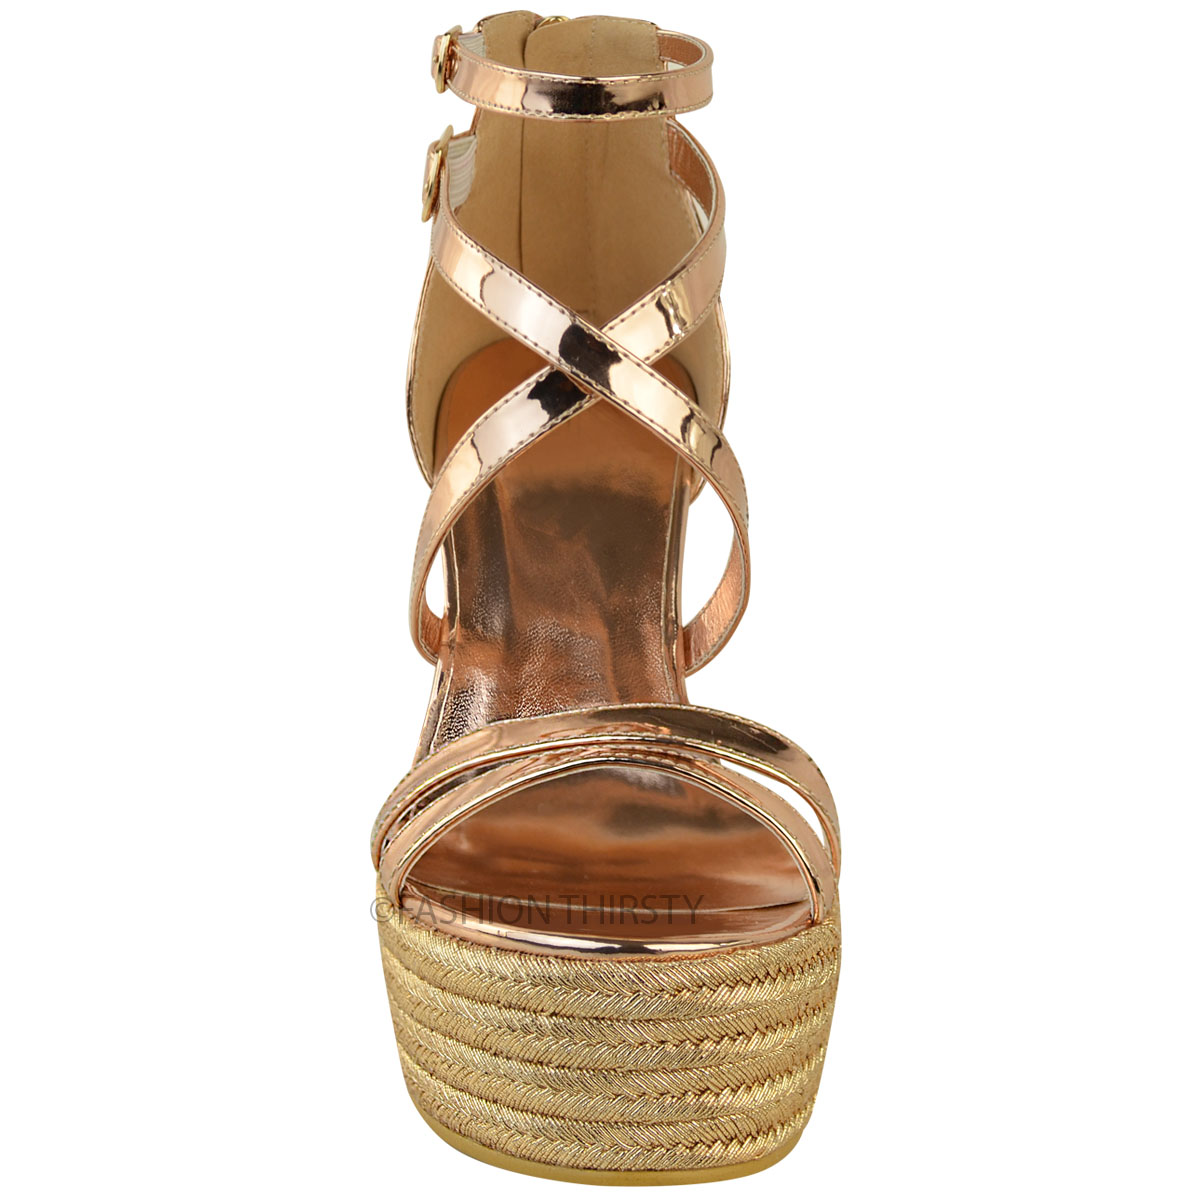 New-Womens-Ladies-Wedge-Espadrille-Sandals-Strappy-Rose-Gold-Summer-Shoes-Size thumbnail 6